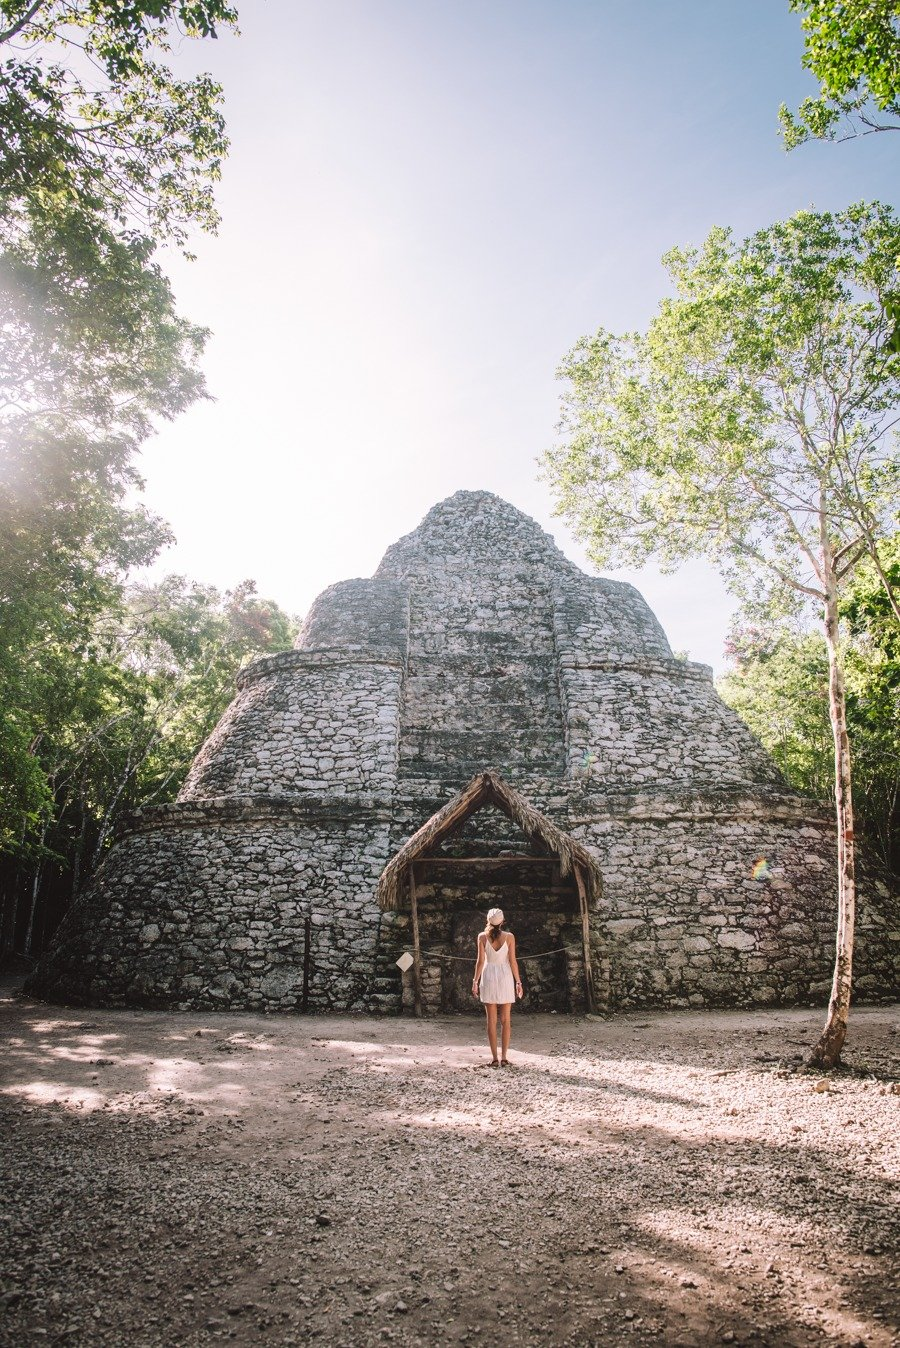 Travel Guide for Tulum Mexico